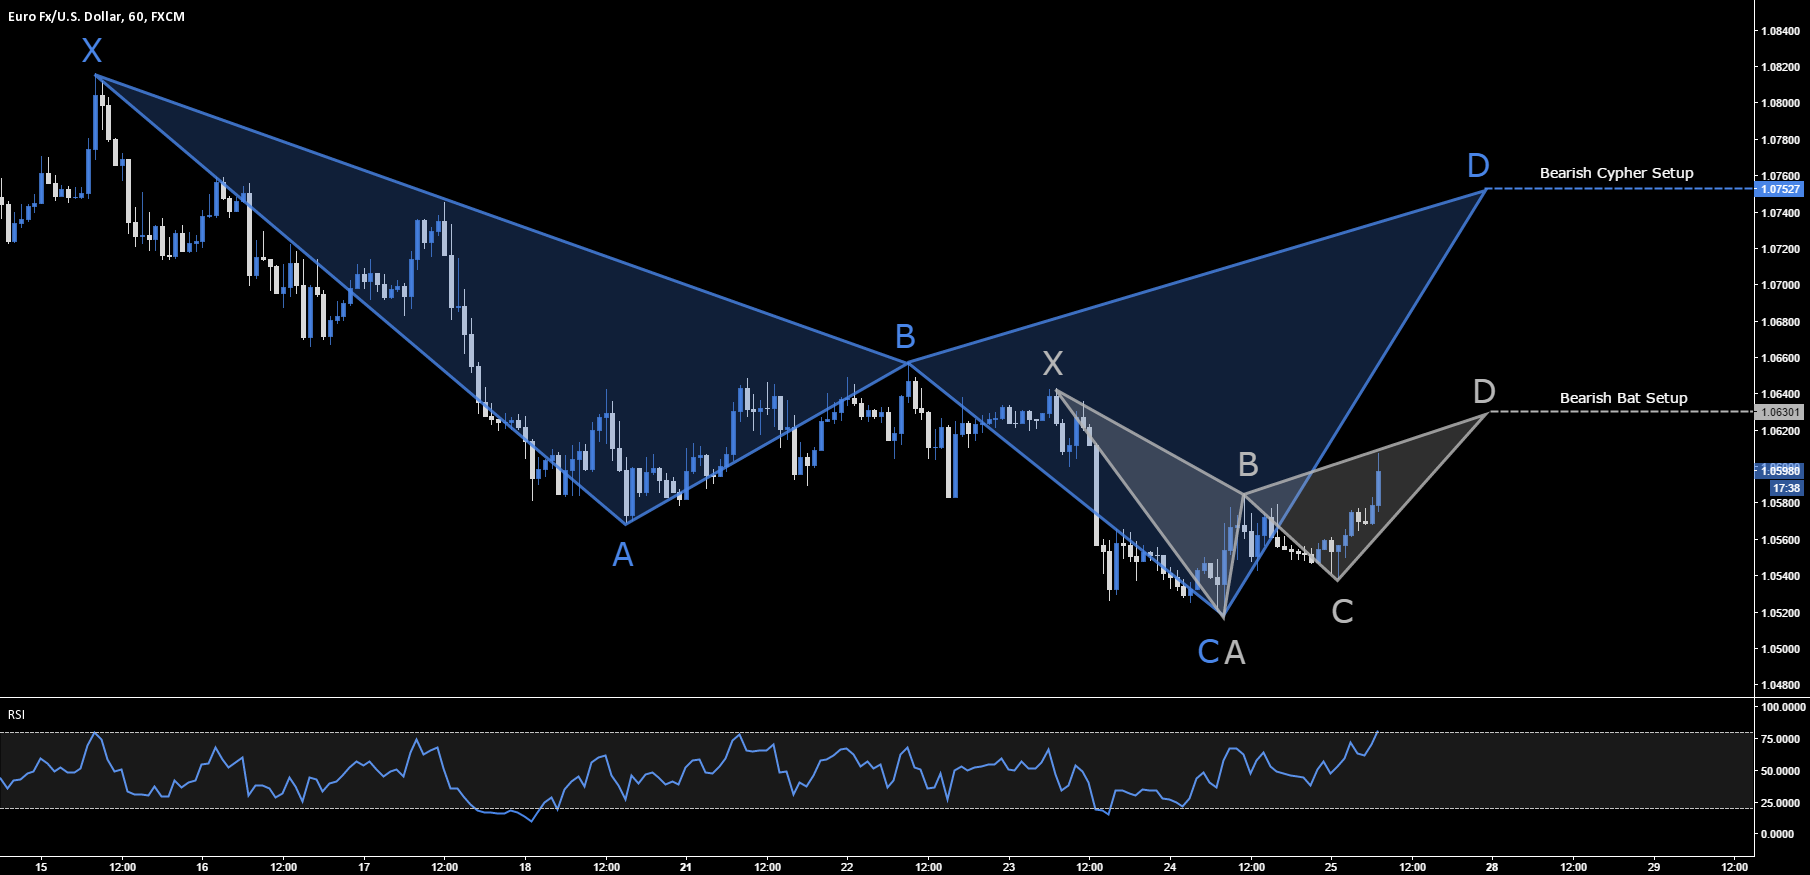 EUR.USD - Bearish Bat & Cypher Setup - 1.0630 & 1.0752